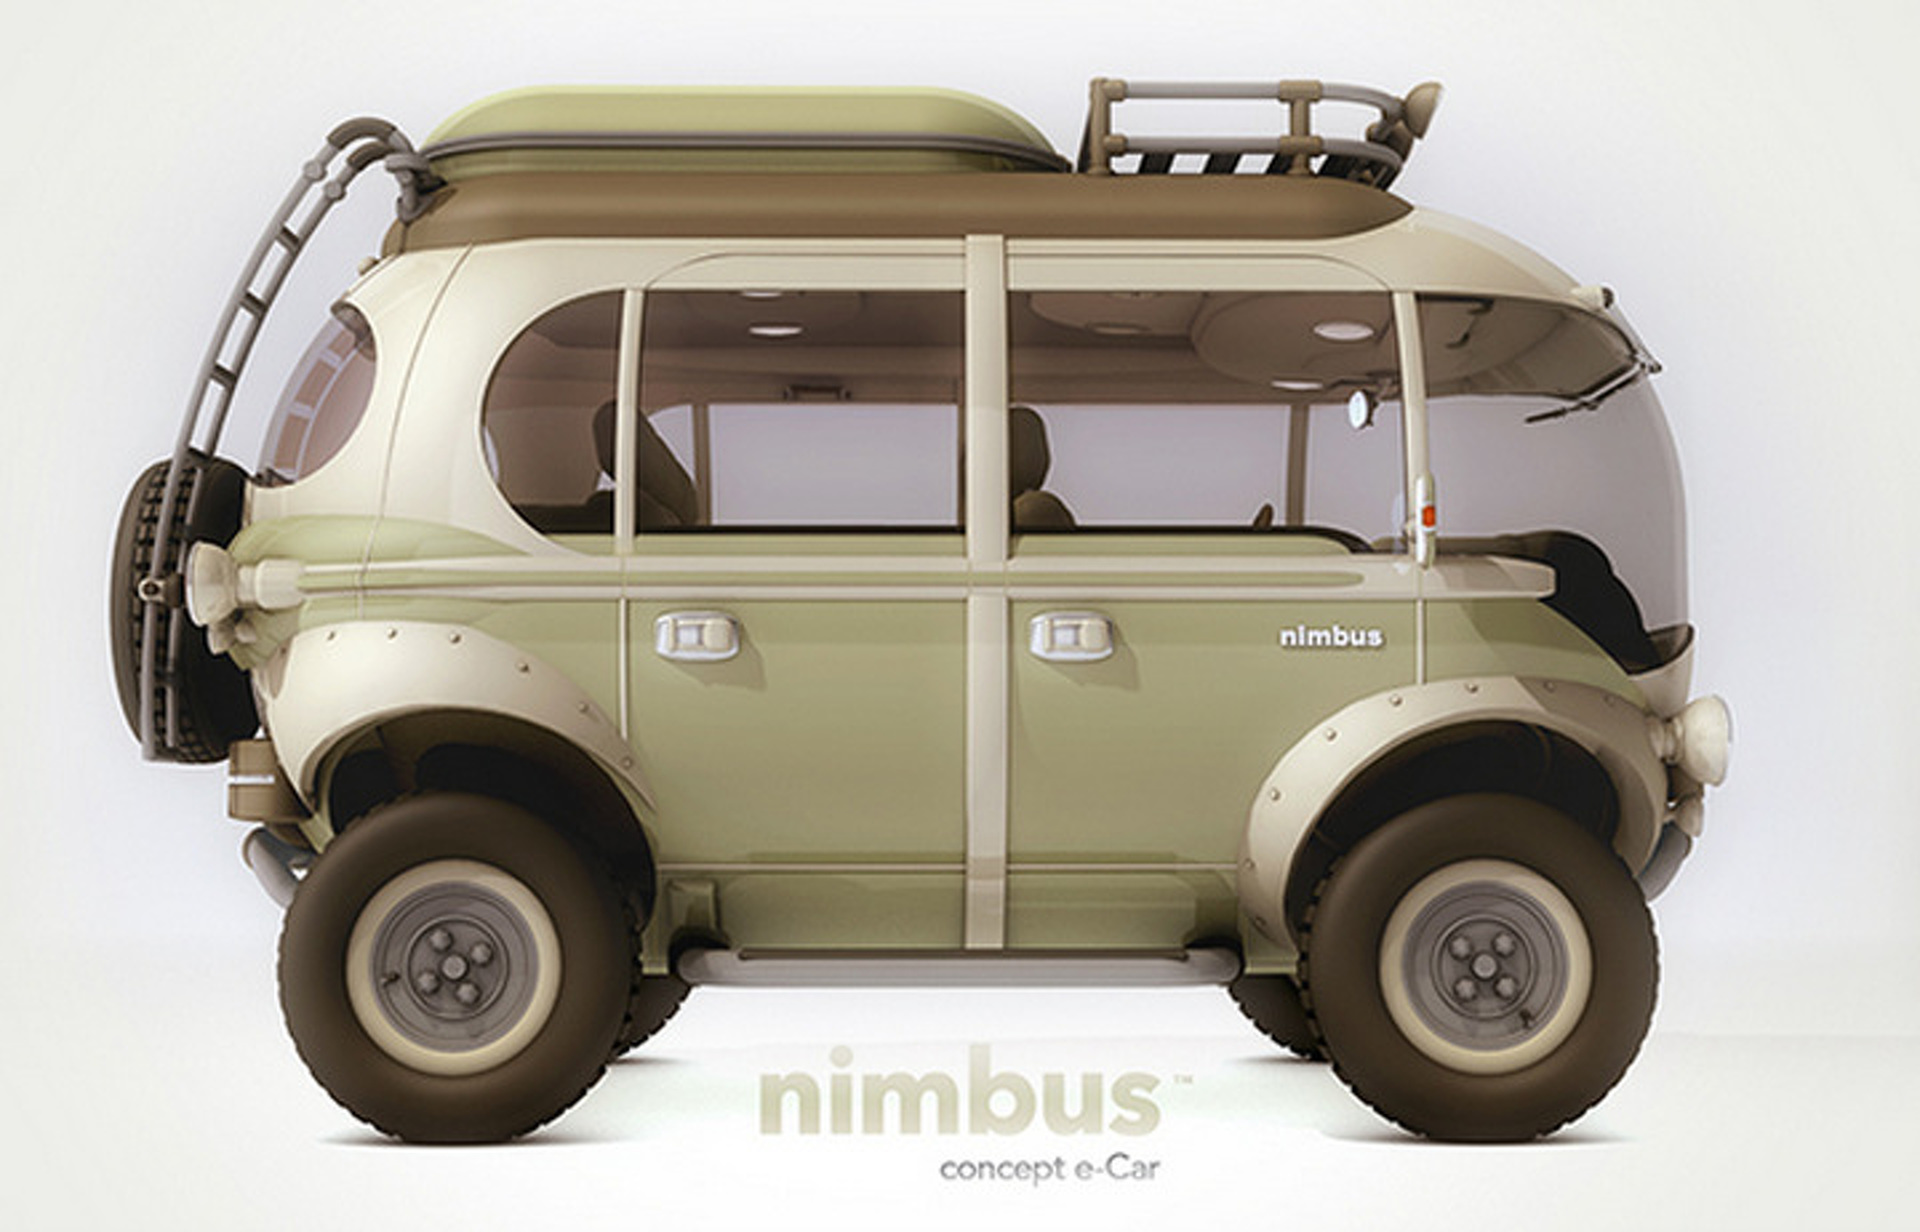 The Nimbus Concept Is A Futuristic 4x4 Take On The Vw Bus